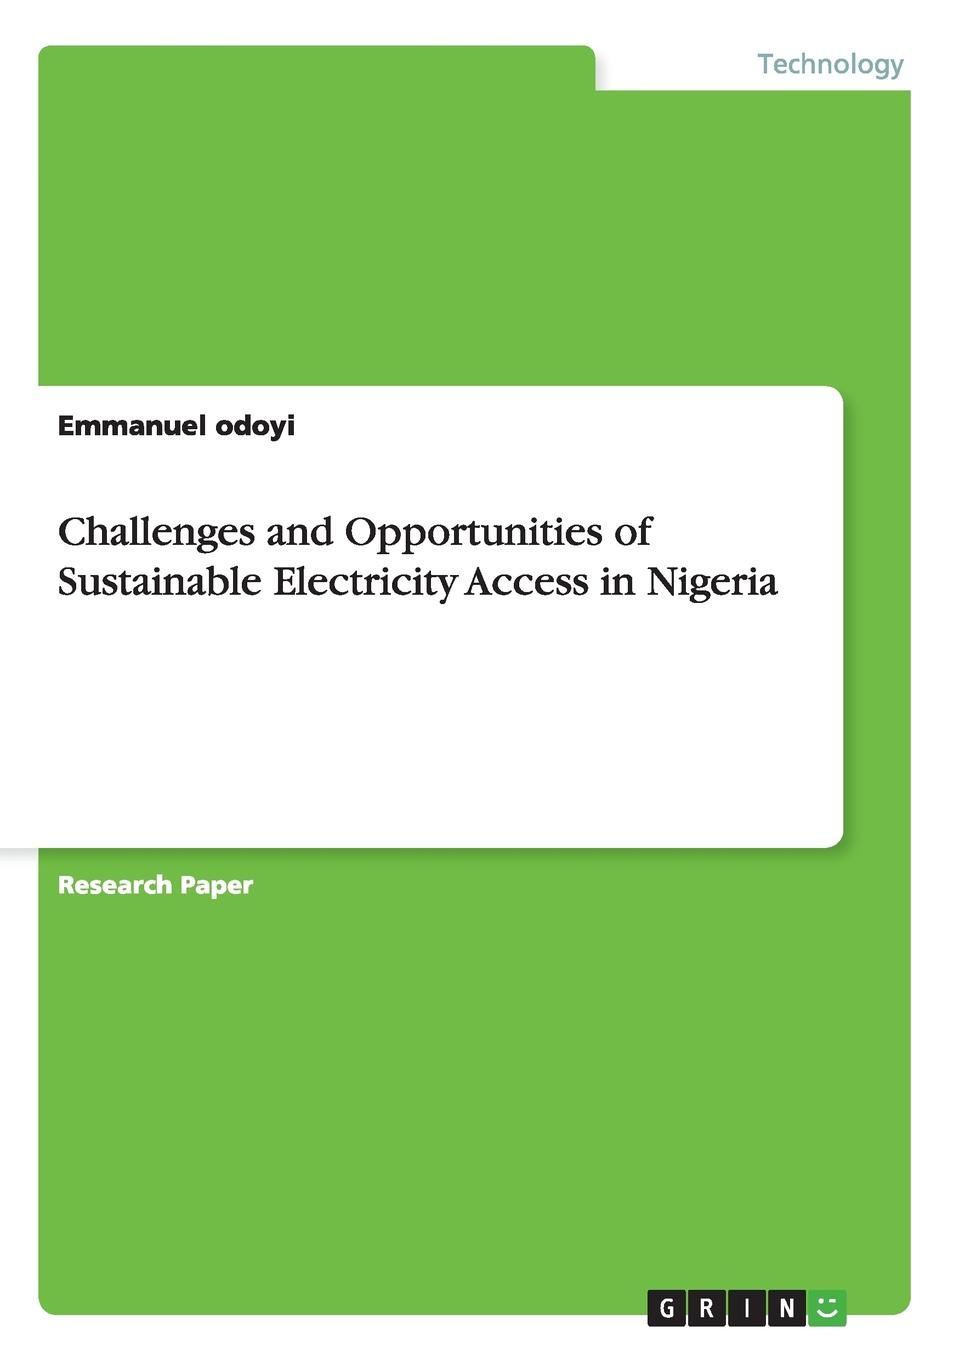 Emmanuel Odoyi Challenges and Opportunities of Sustainable Electricity Access in Nigeria apicultural practices in nigeria